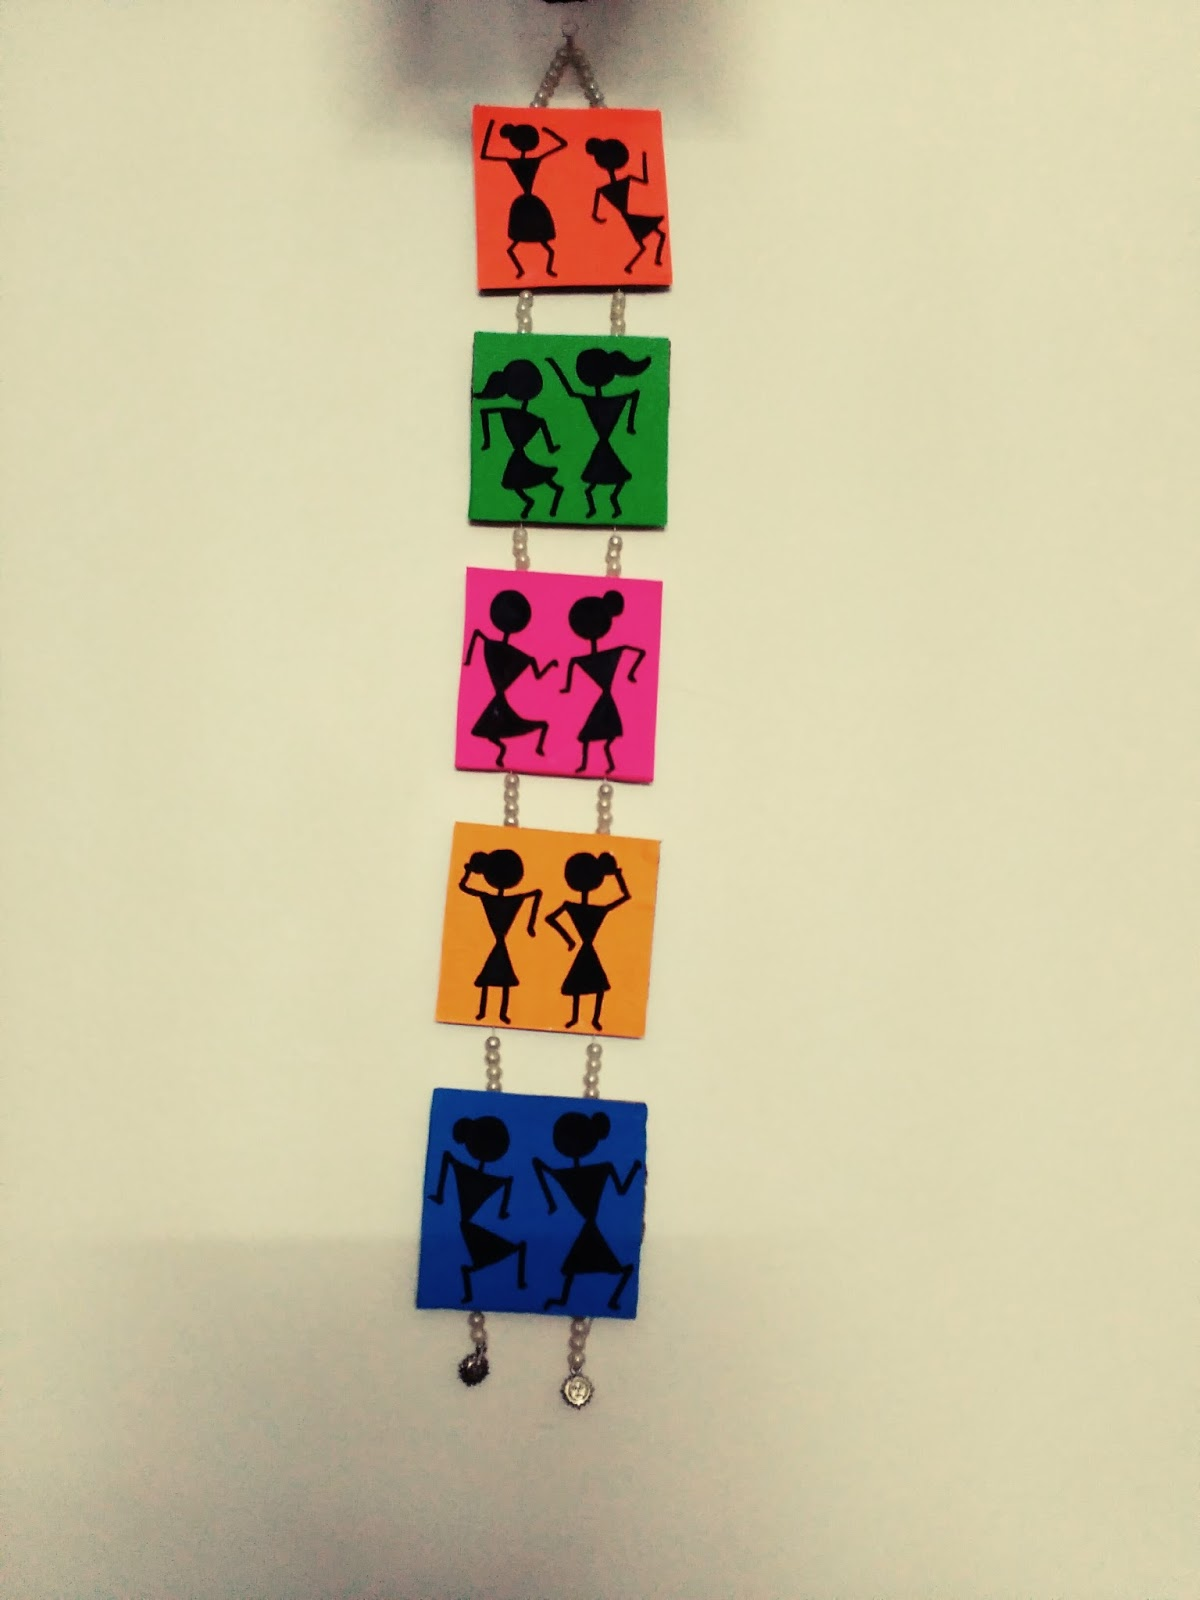 Warli Wall Hang Material Required Cardboard Origami Sheets Black Marker Paint Strong Thread Beads Glue Basic Stationery